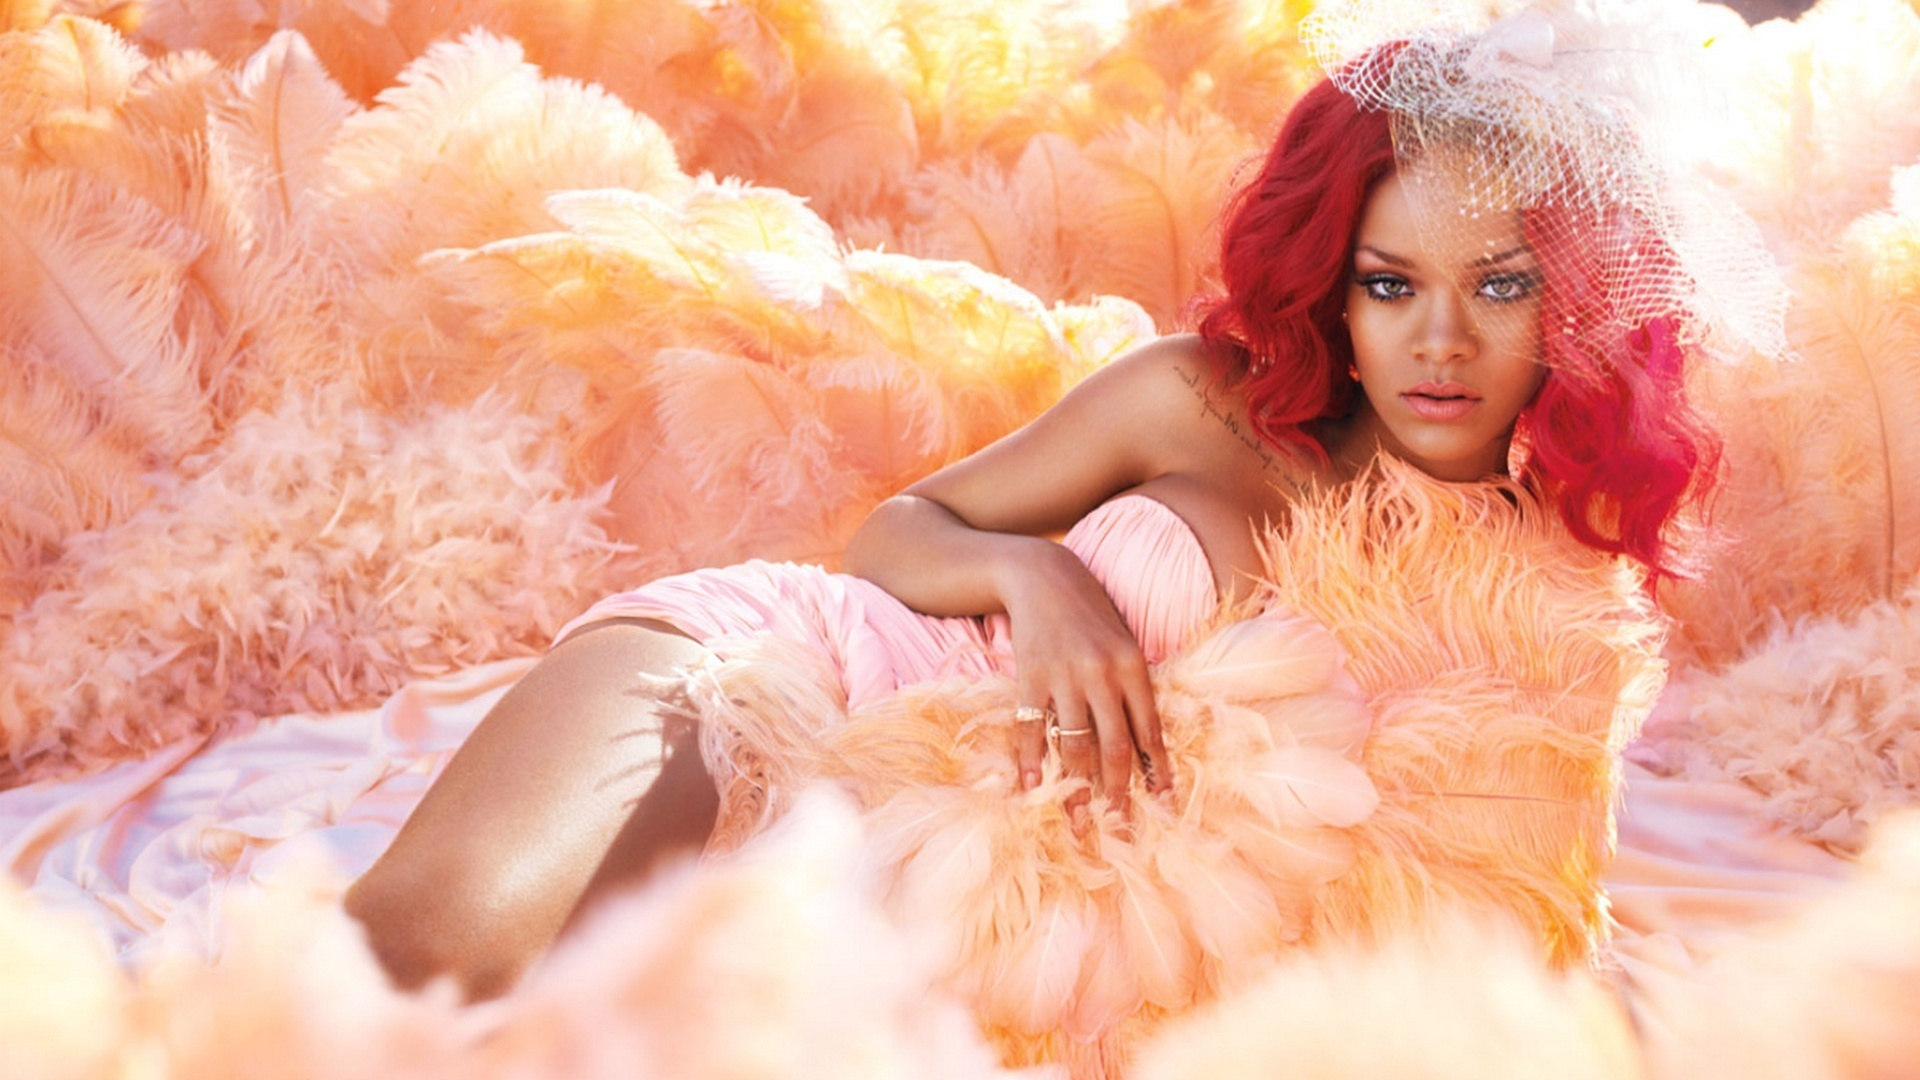 rihanna full hd wallpaper and background image | 1920x1080 | id:300947